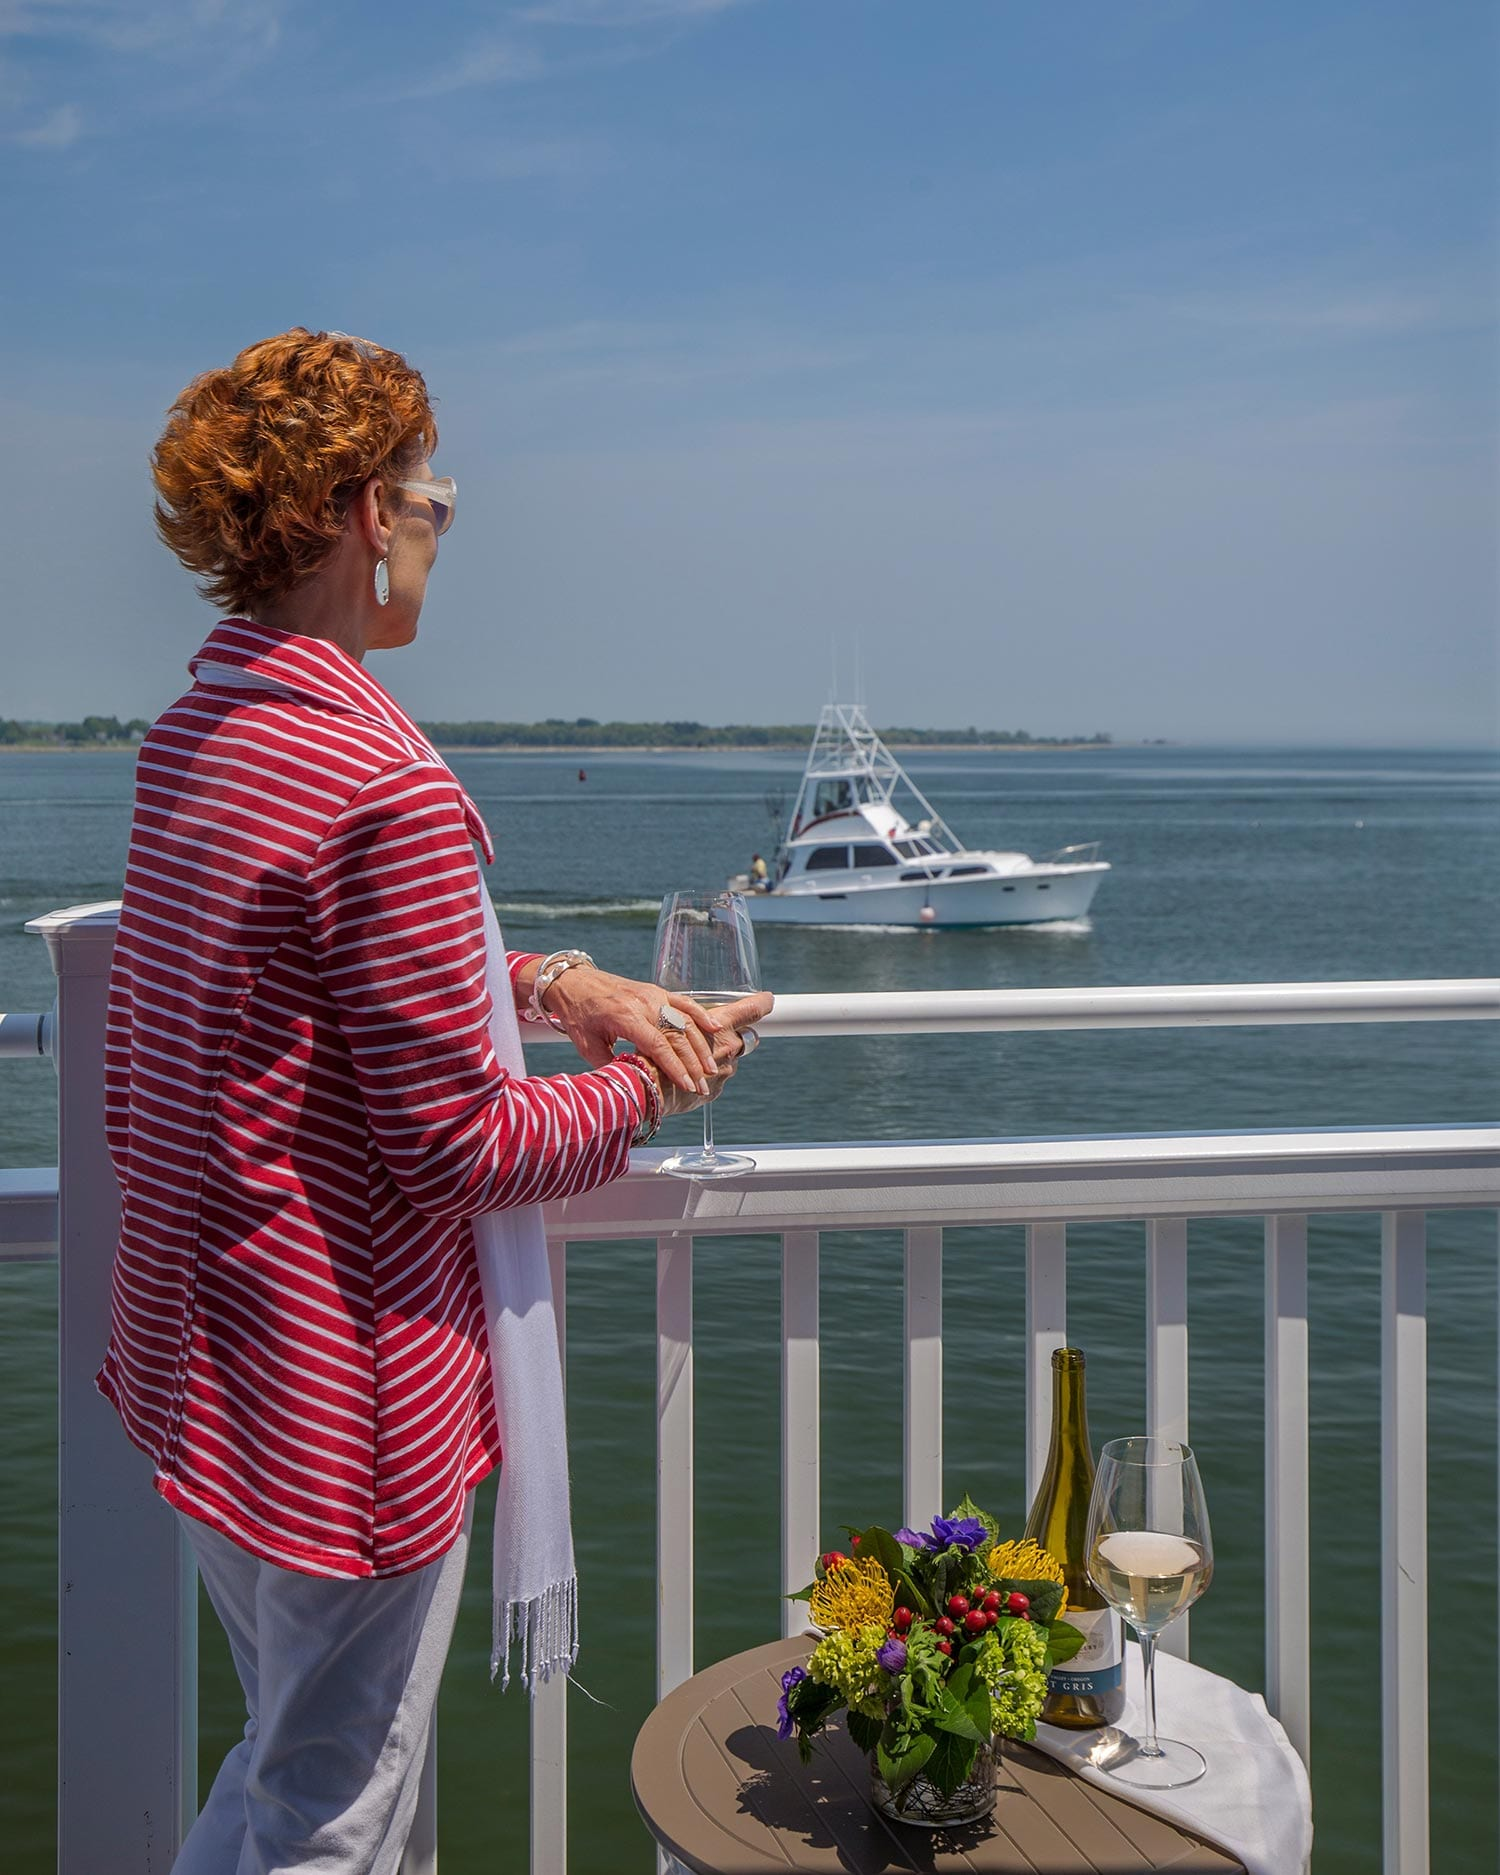 OIder Red Haired Women On Balcony Looking At Boats On The Connecticut River